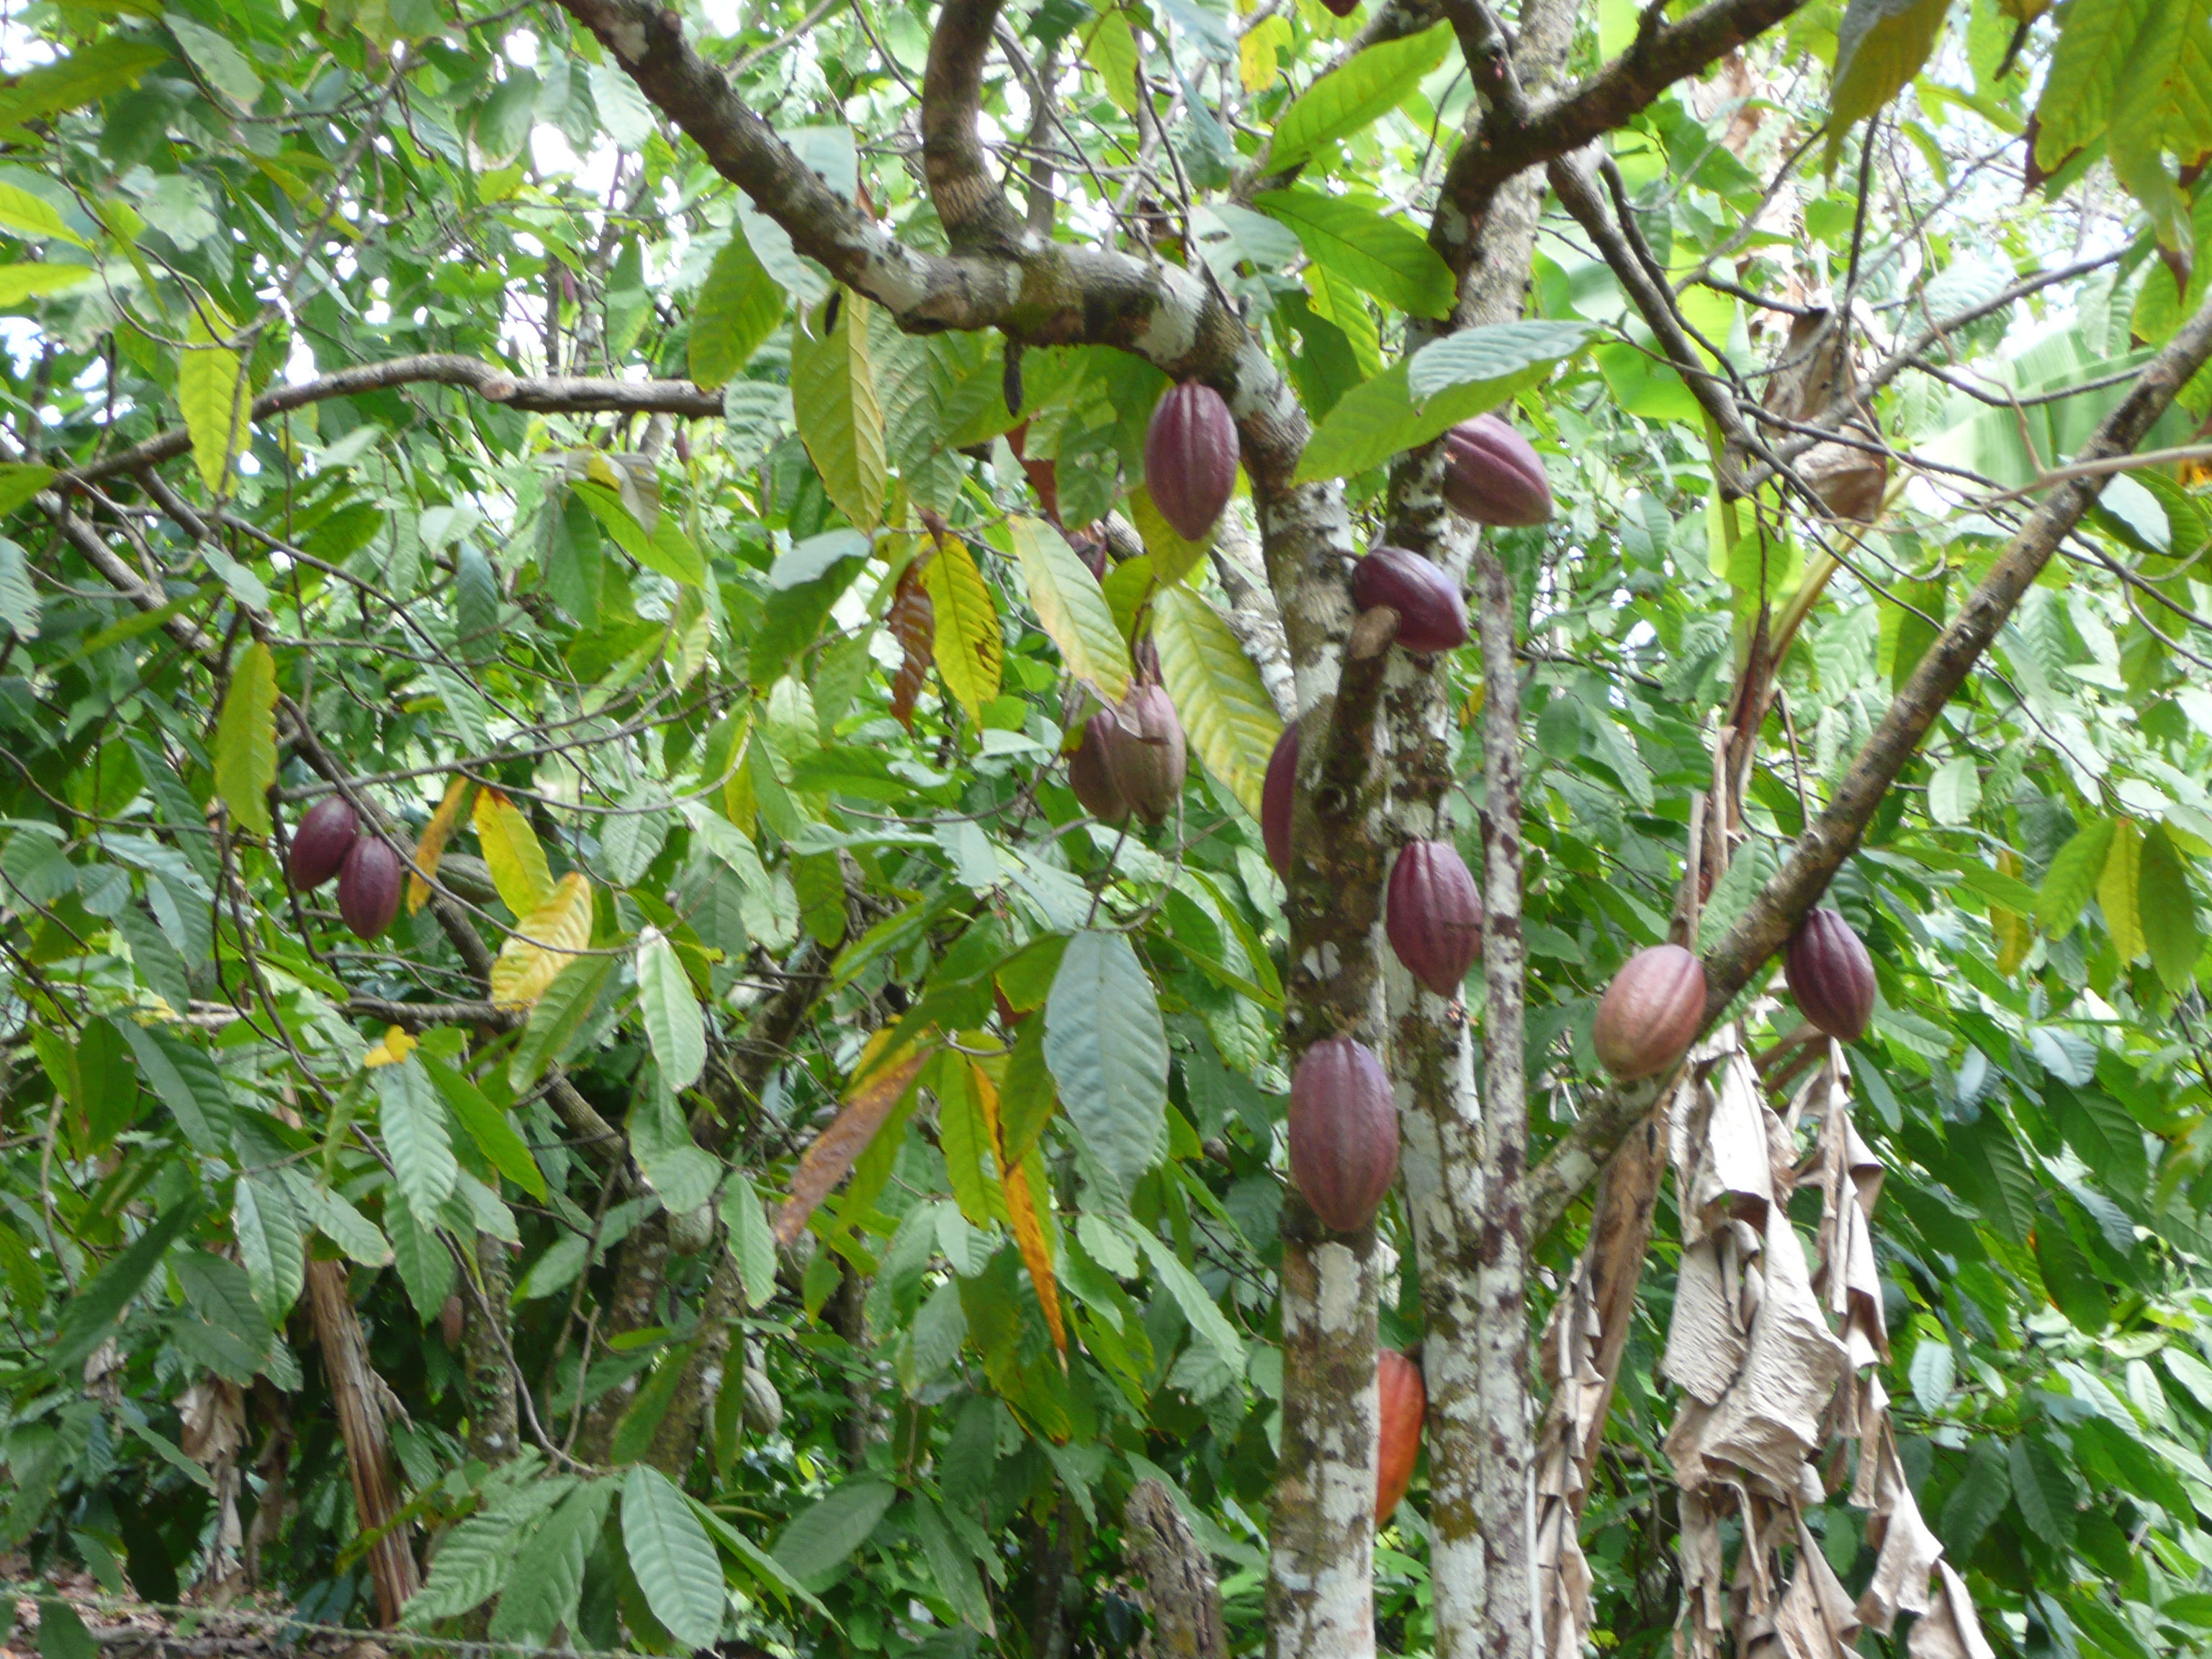 Dreaming of Walking, Plucking Cacao Fruit and a High Fence